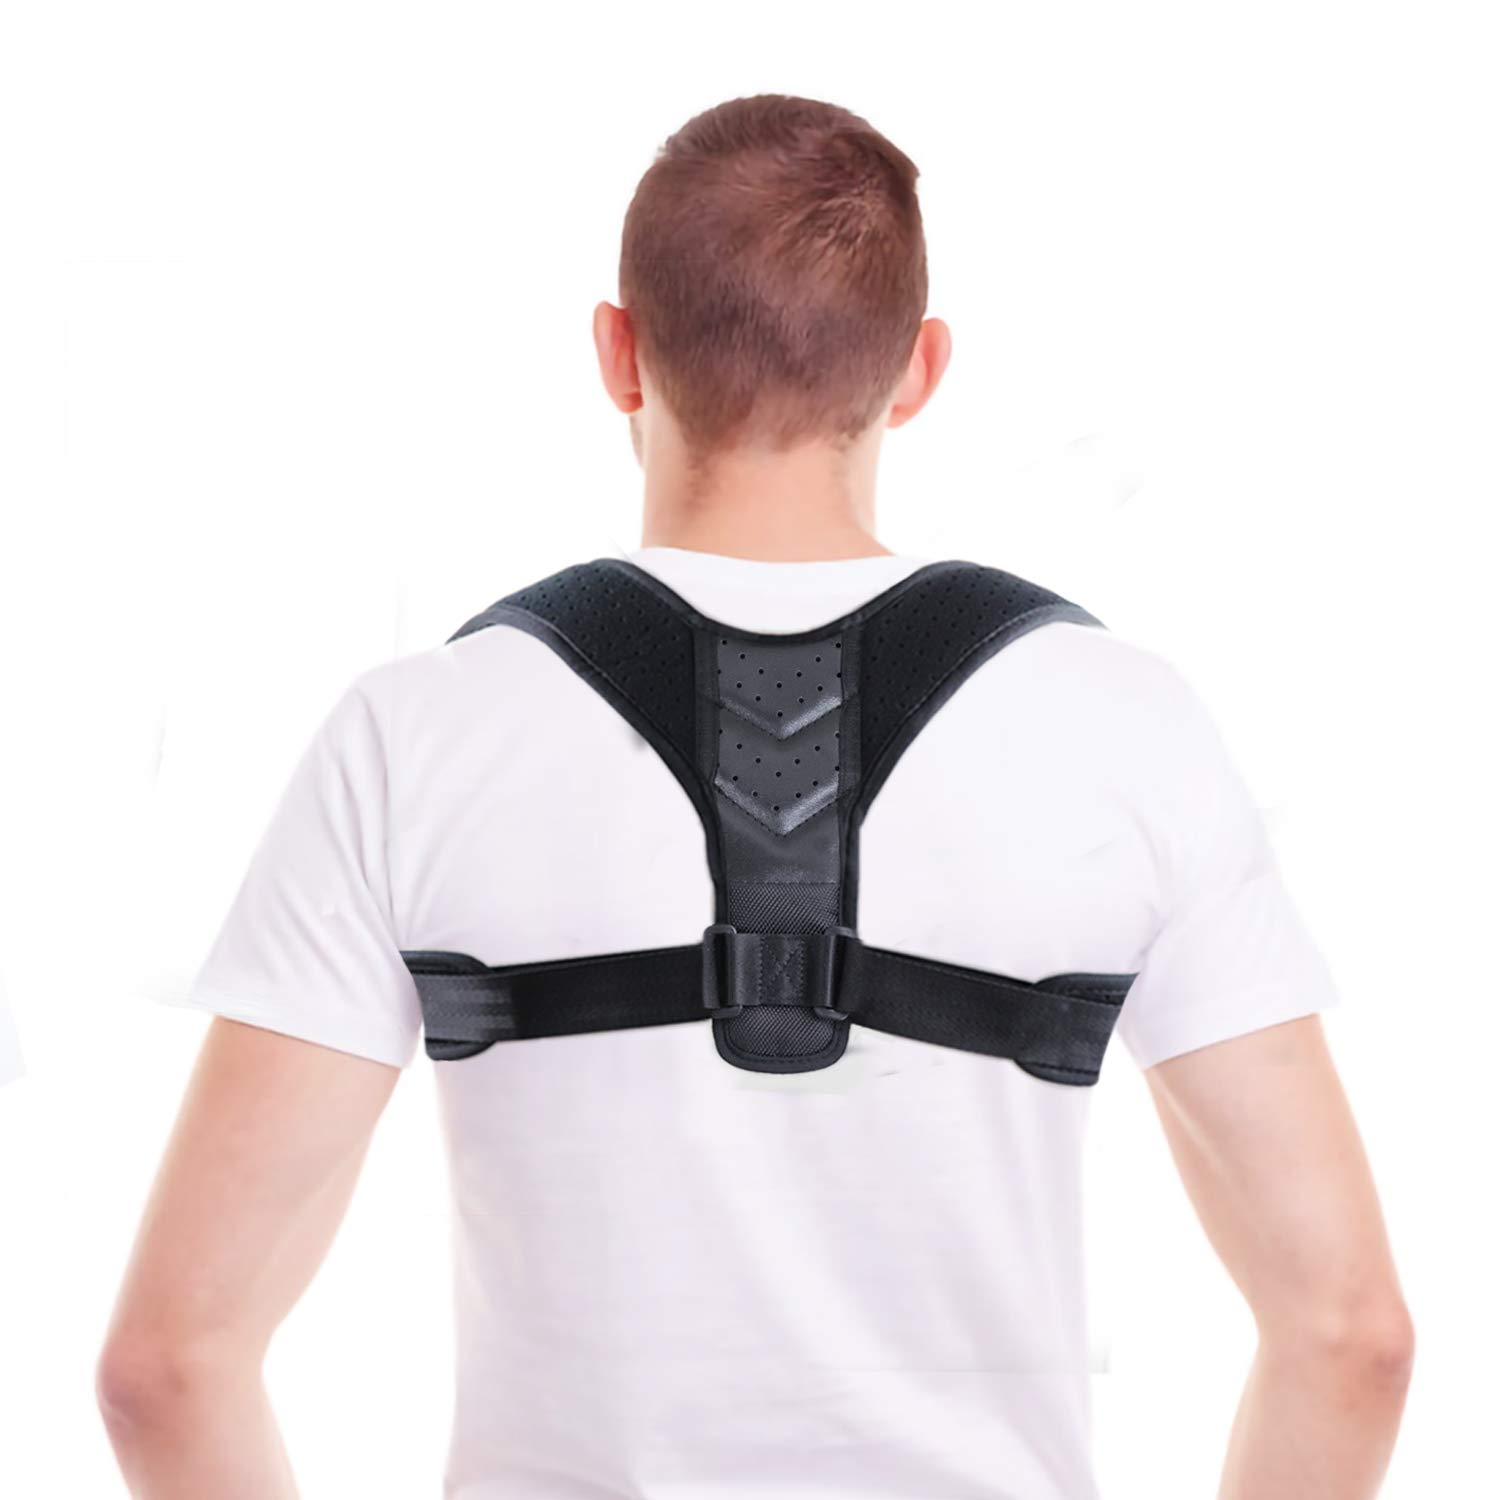 Amazon.com: Tagefa Back Shoulder Posture Corrector for Women and Men, Adjustable Brace, Prevent Humpback Hunchbacked, Upper Neck Pain Relief, Men